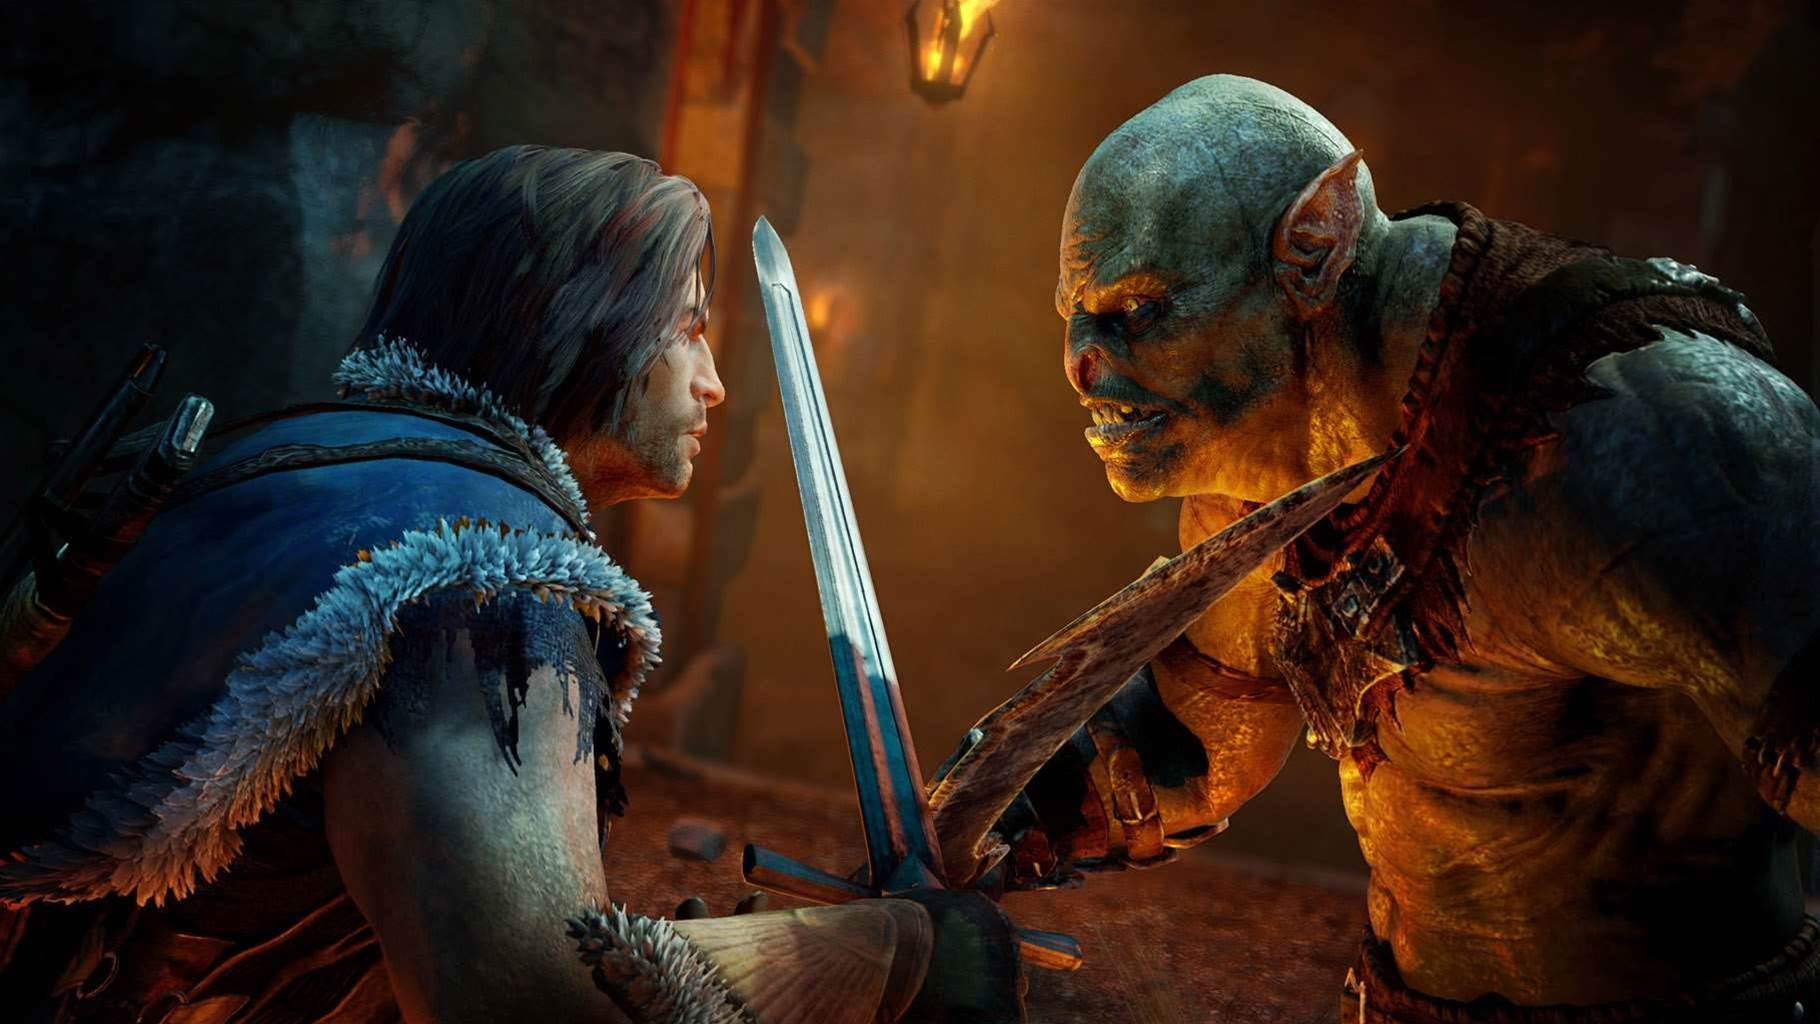 New screens from Middle Earth: Shadow of Mordor